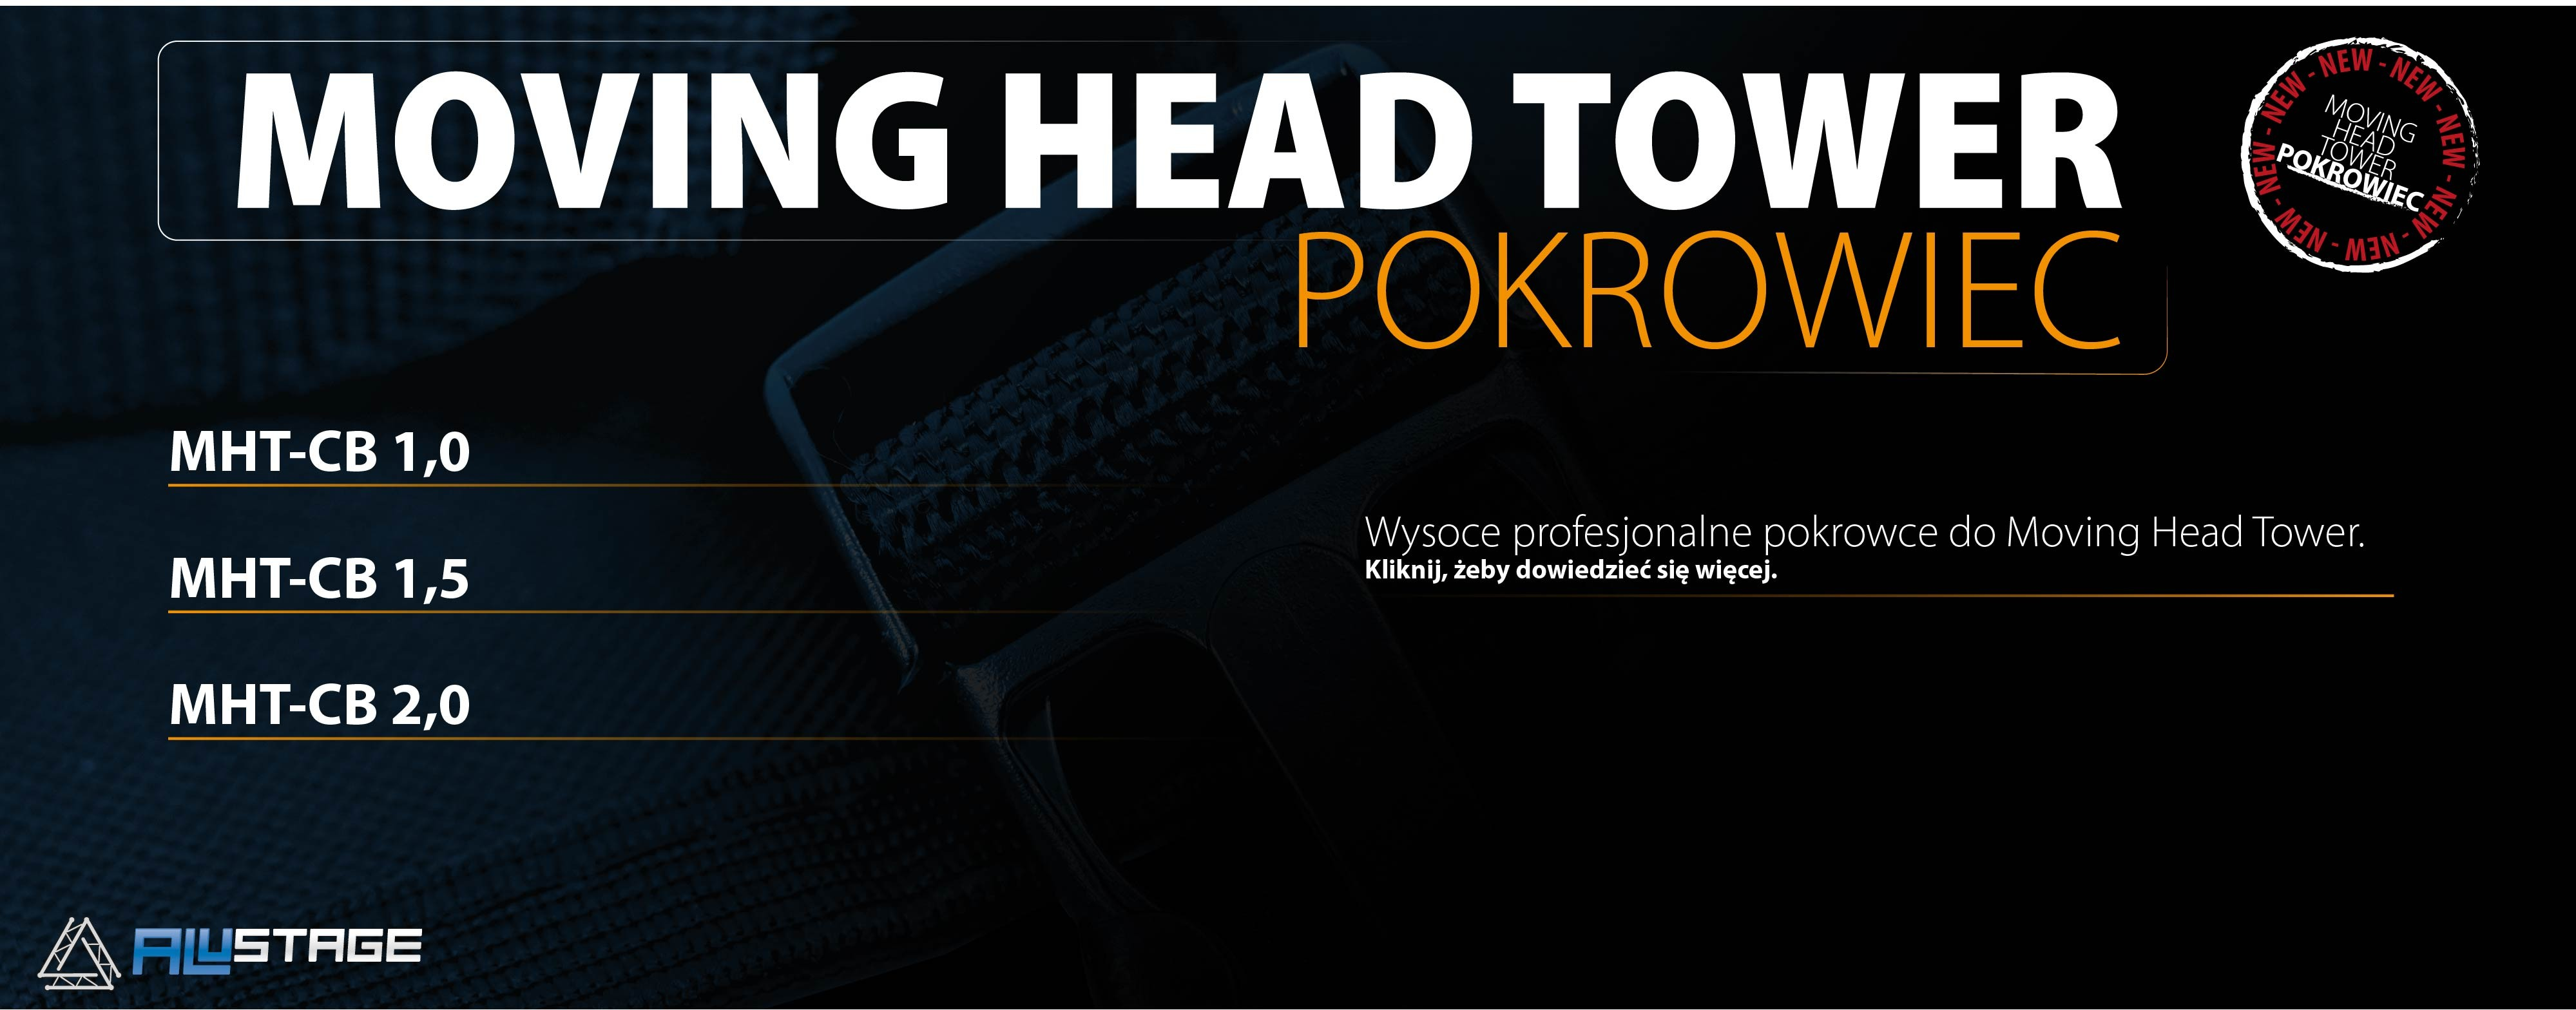 Nowe pokrowce do Moving Head Tower